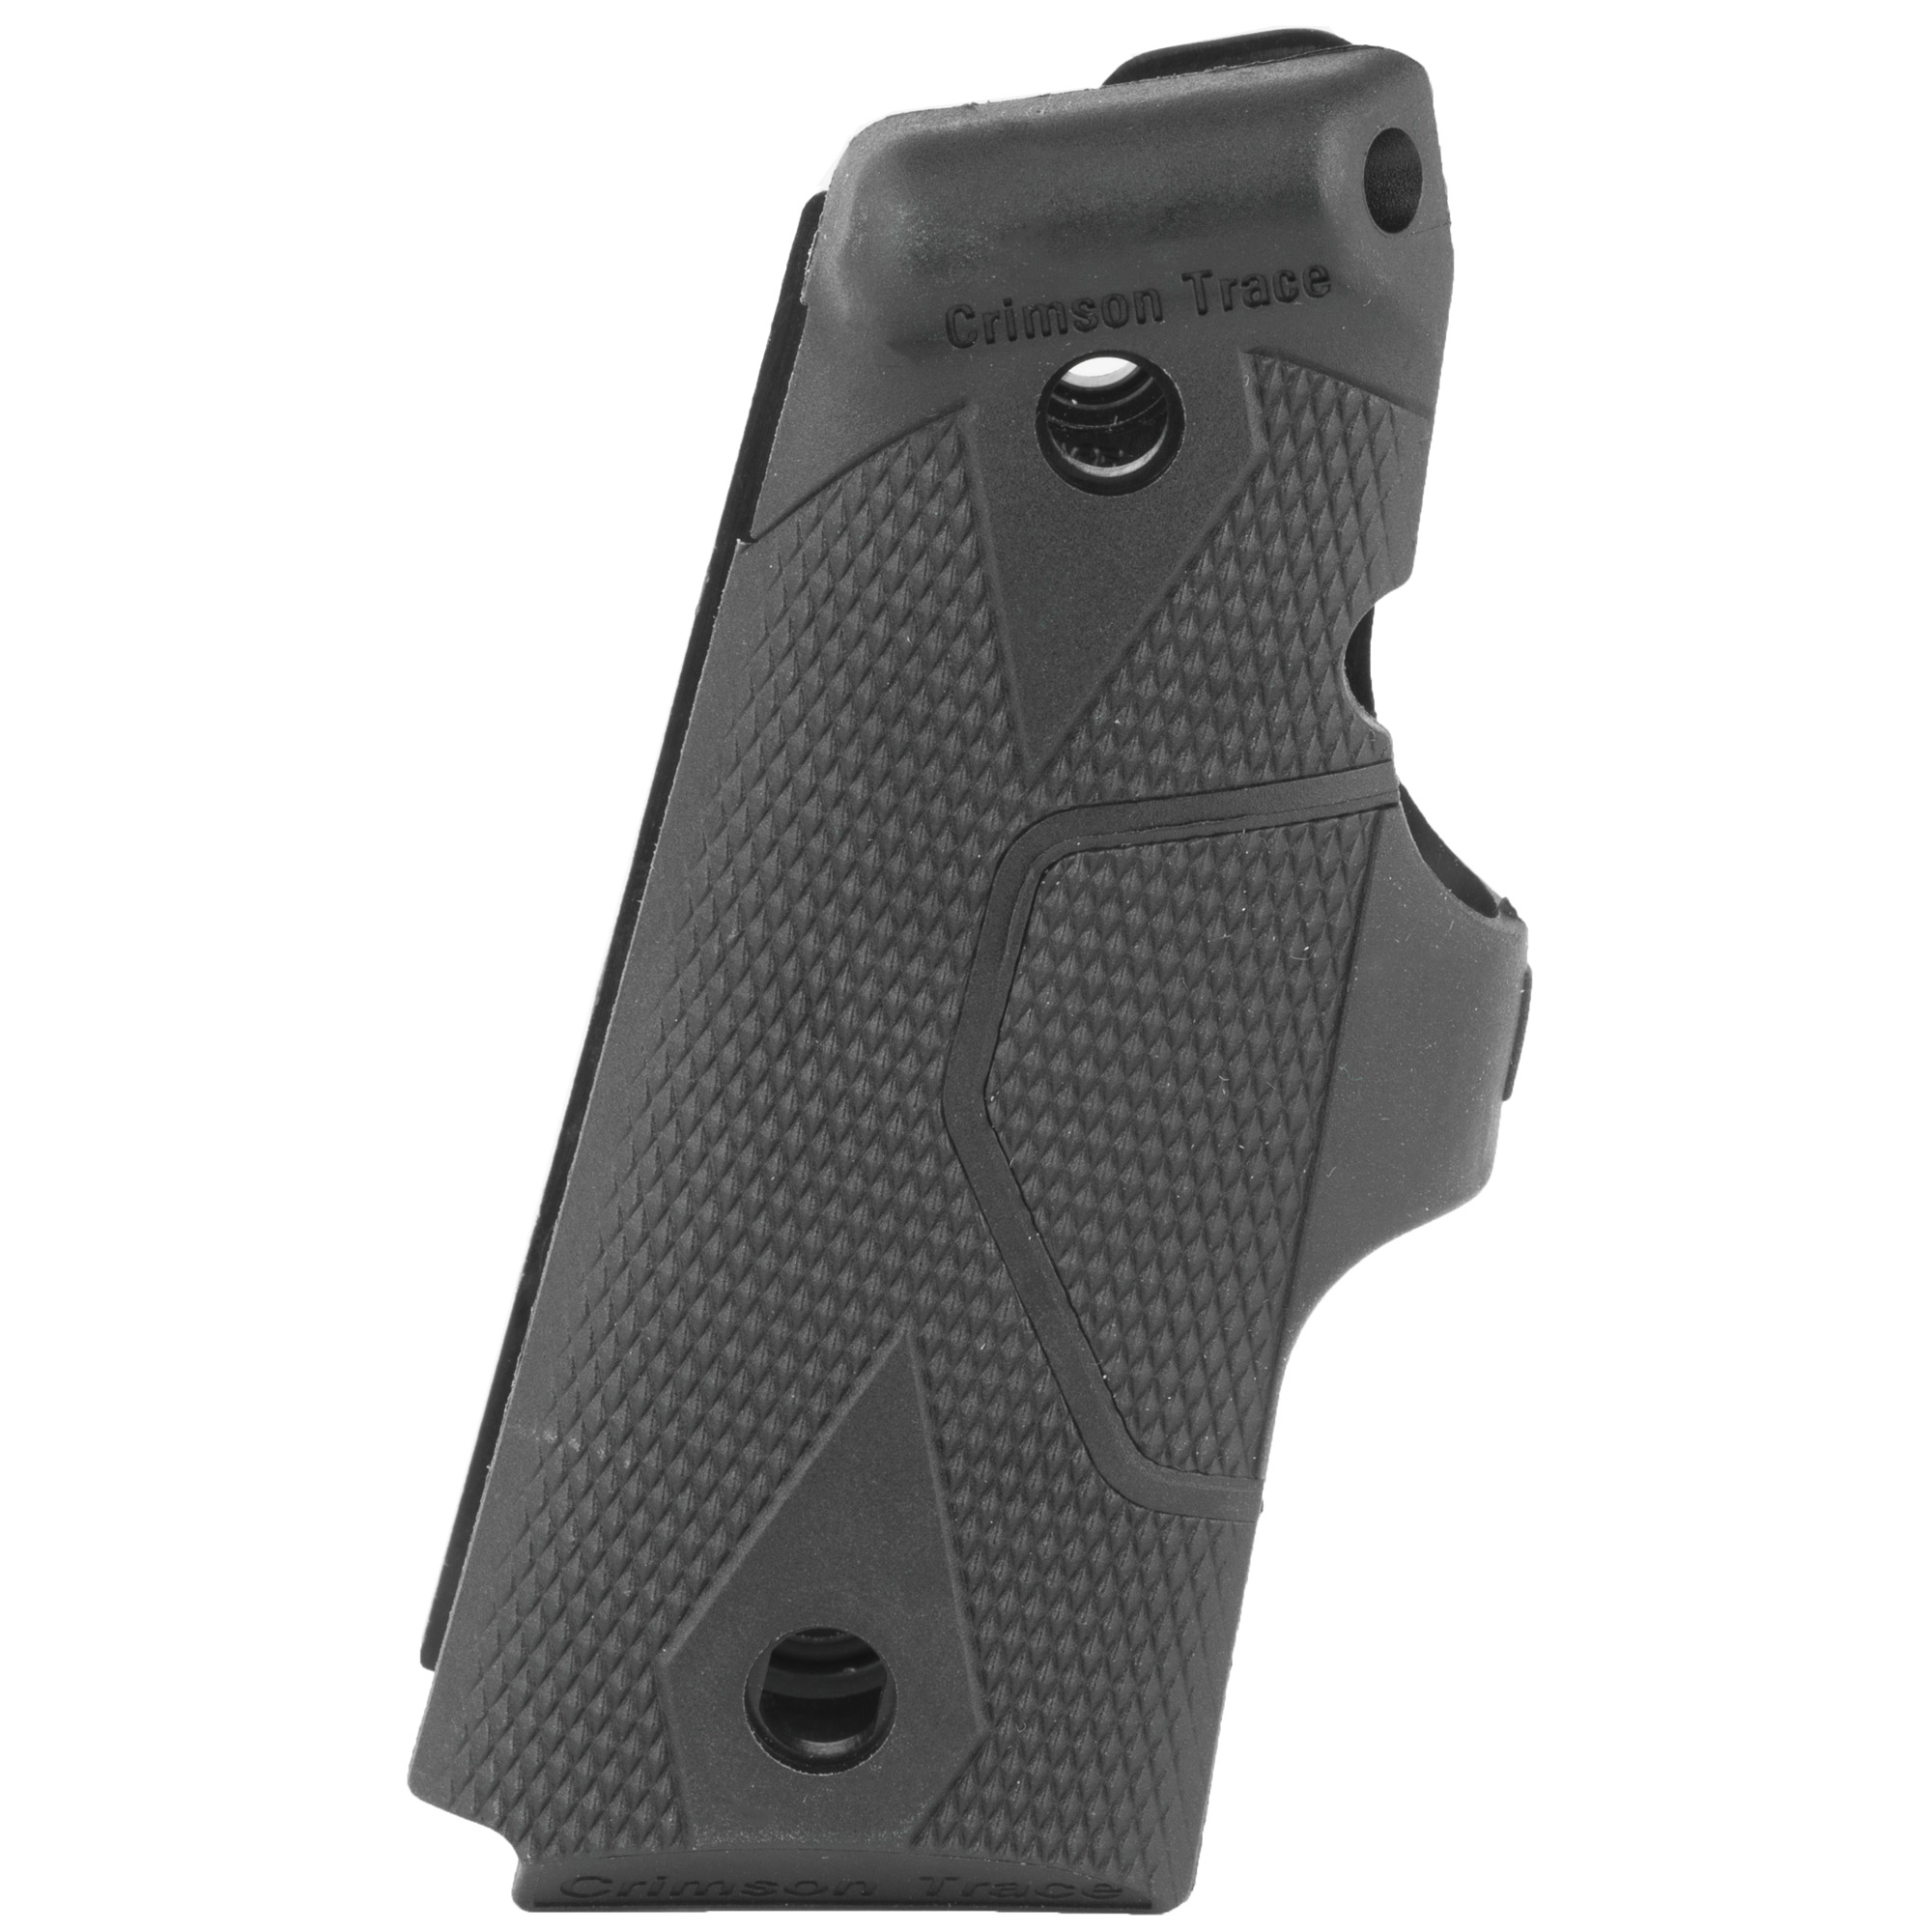 """The flagship LG-404 is Crimson Trace's most popular 1911 laser sight model for Officer's"""" Compact and Defender variants. Featuring rugged polymer side panels and a rubber-overmold activation button"""" these are the recommended Lasergrips(R) for most 1911 shooters. Standard to Crimson Trace(R) Lasergrips"""" the LG-404 features instinctive activation. This means that the laser sight automatically springs to life when the weapon is held in a natural firing grip. This product is not compatible with ambidextrous safety levers."""